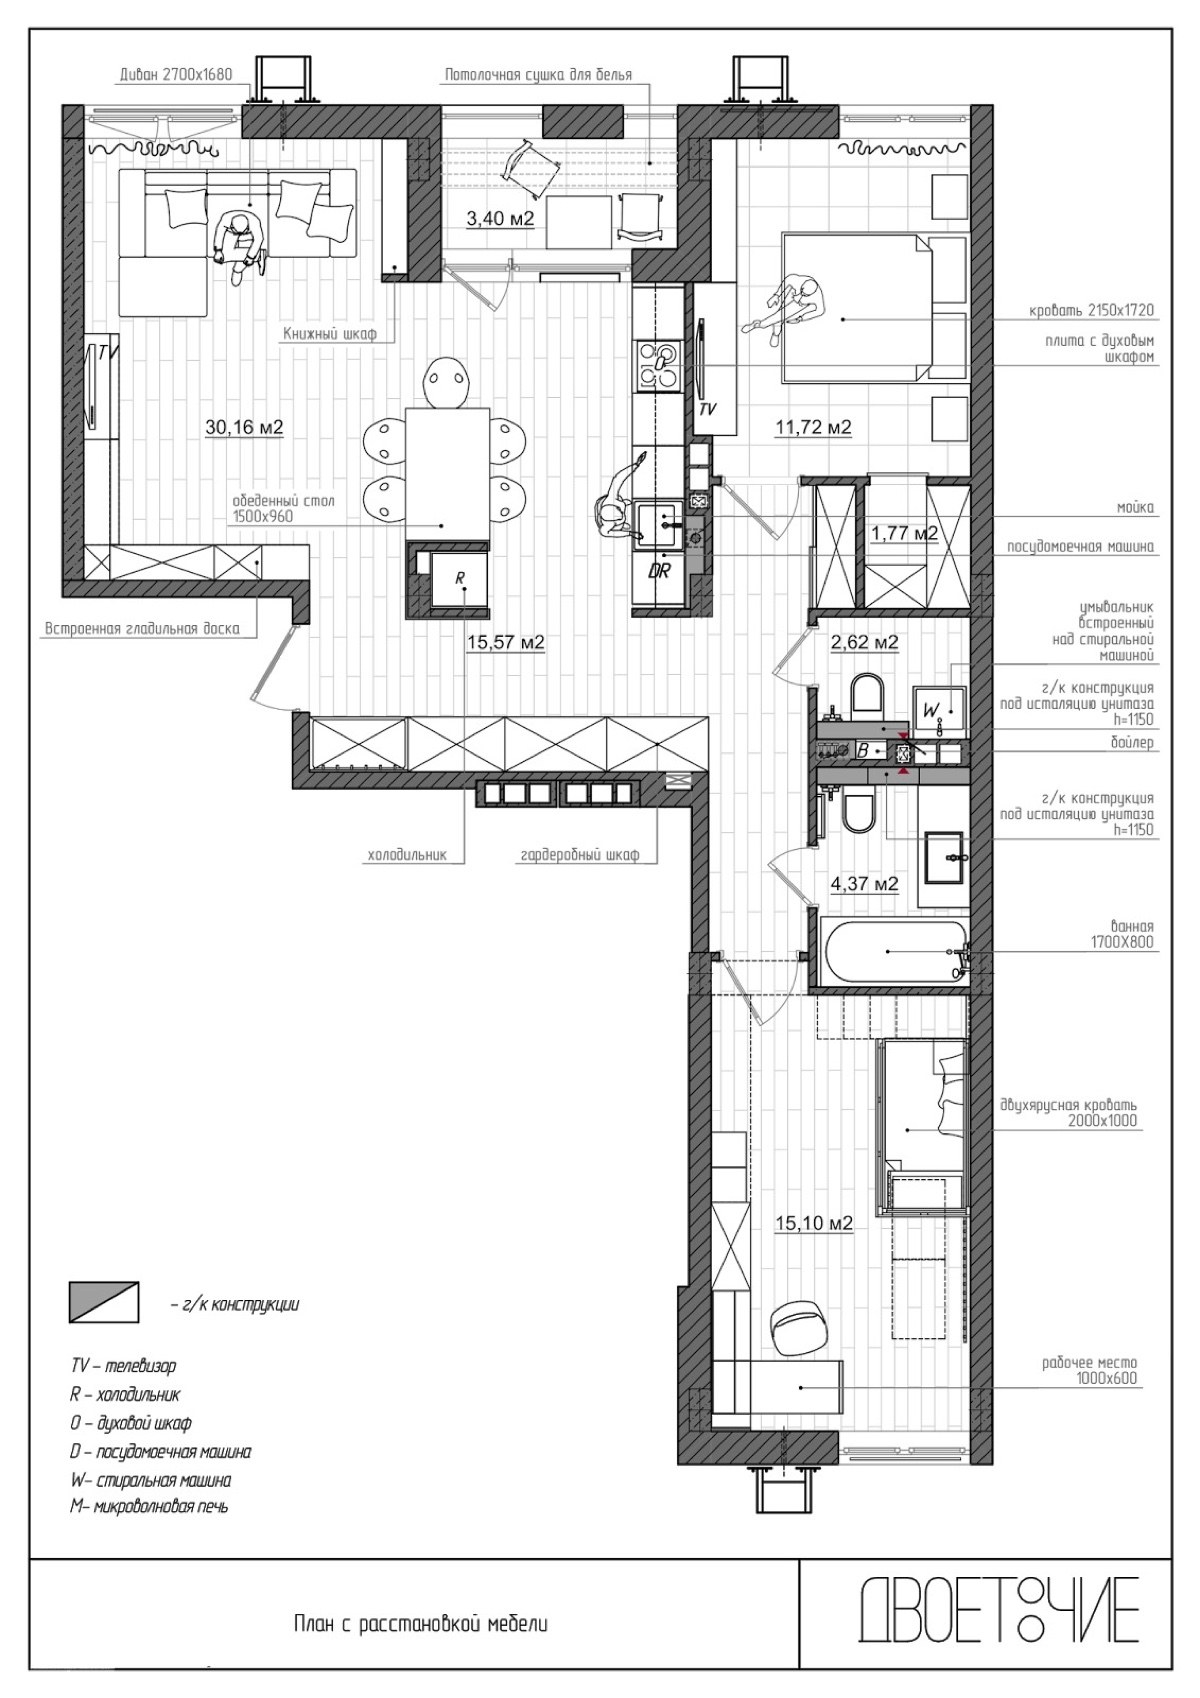 28 80 square meter 80 square meters house plans for 80 square meter house design